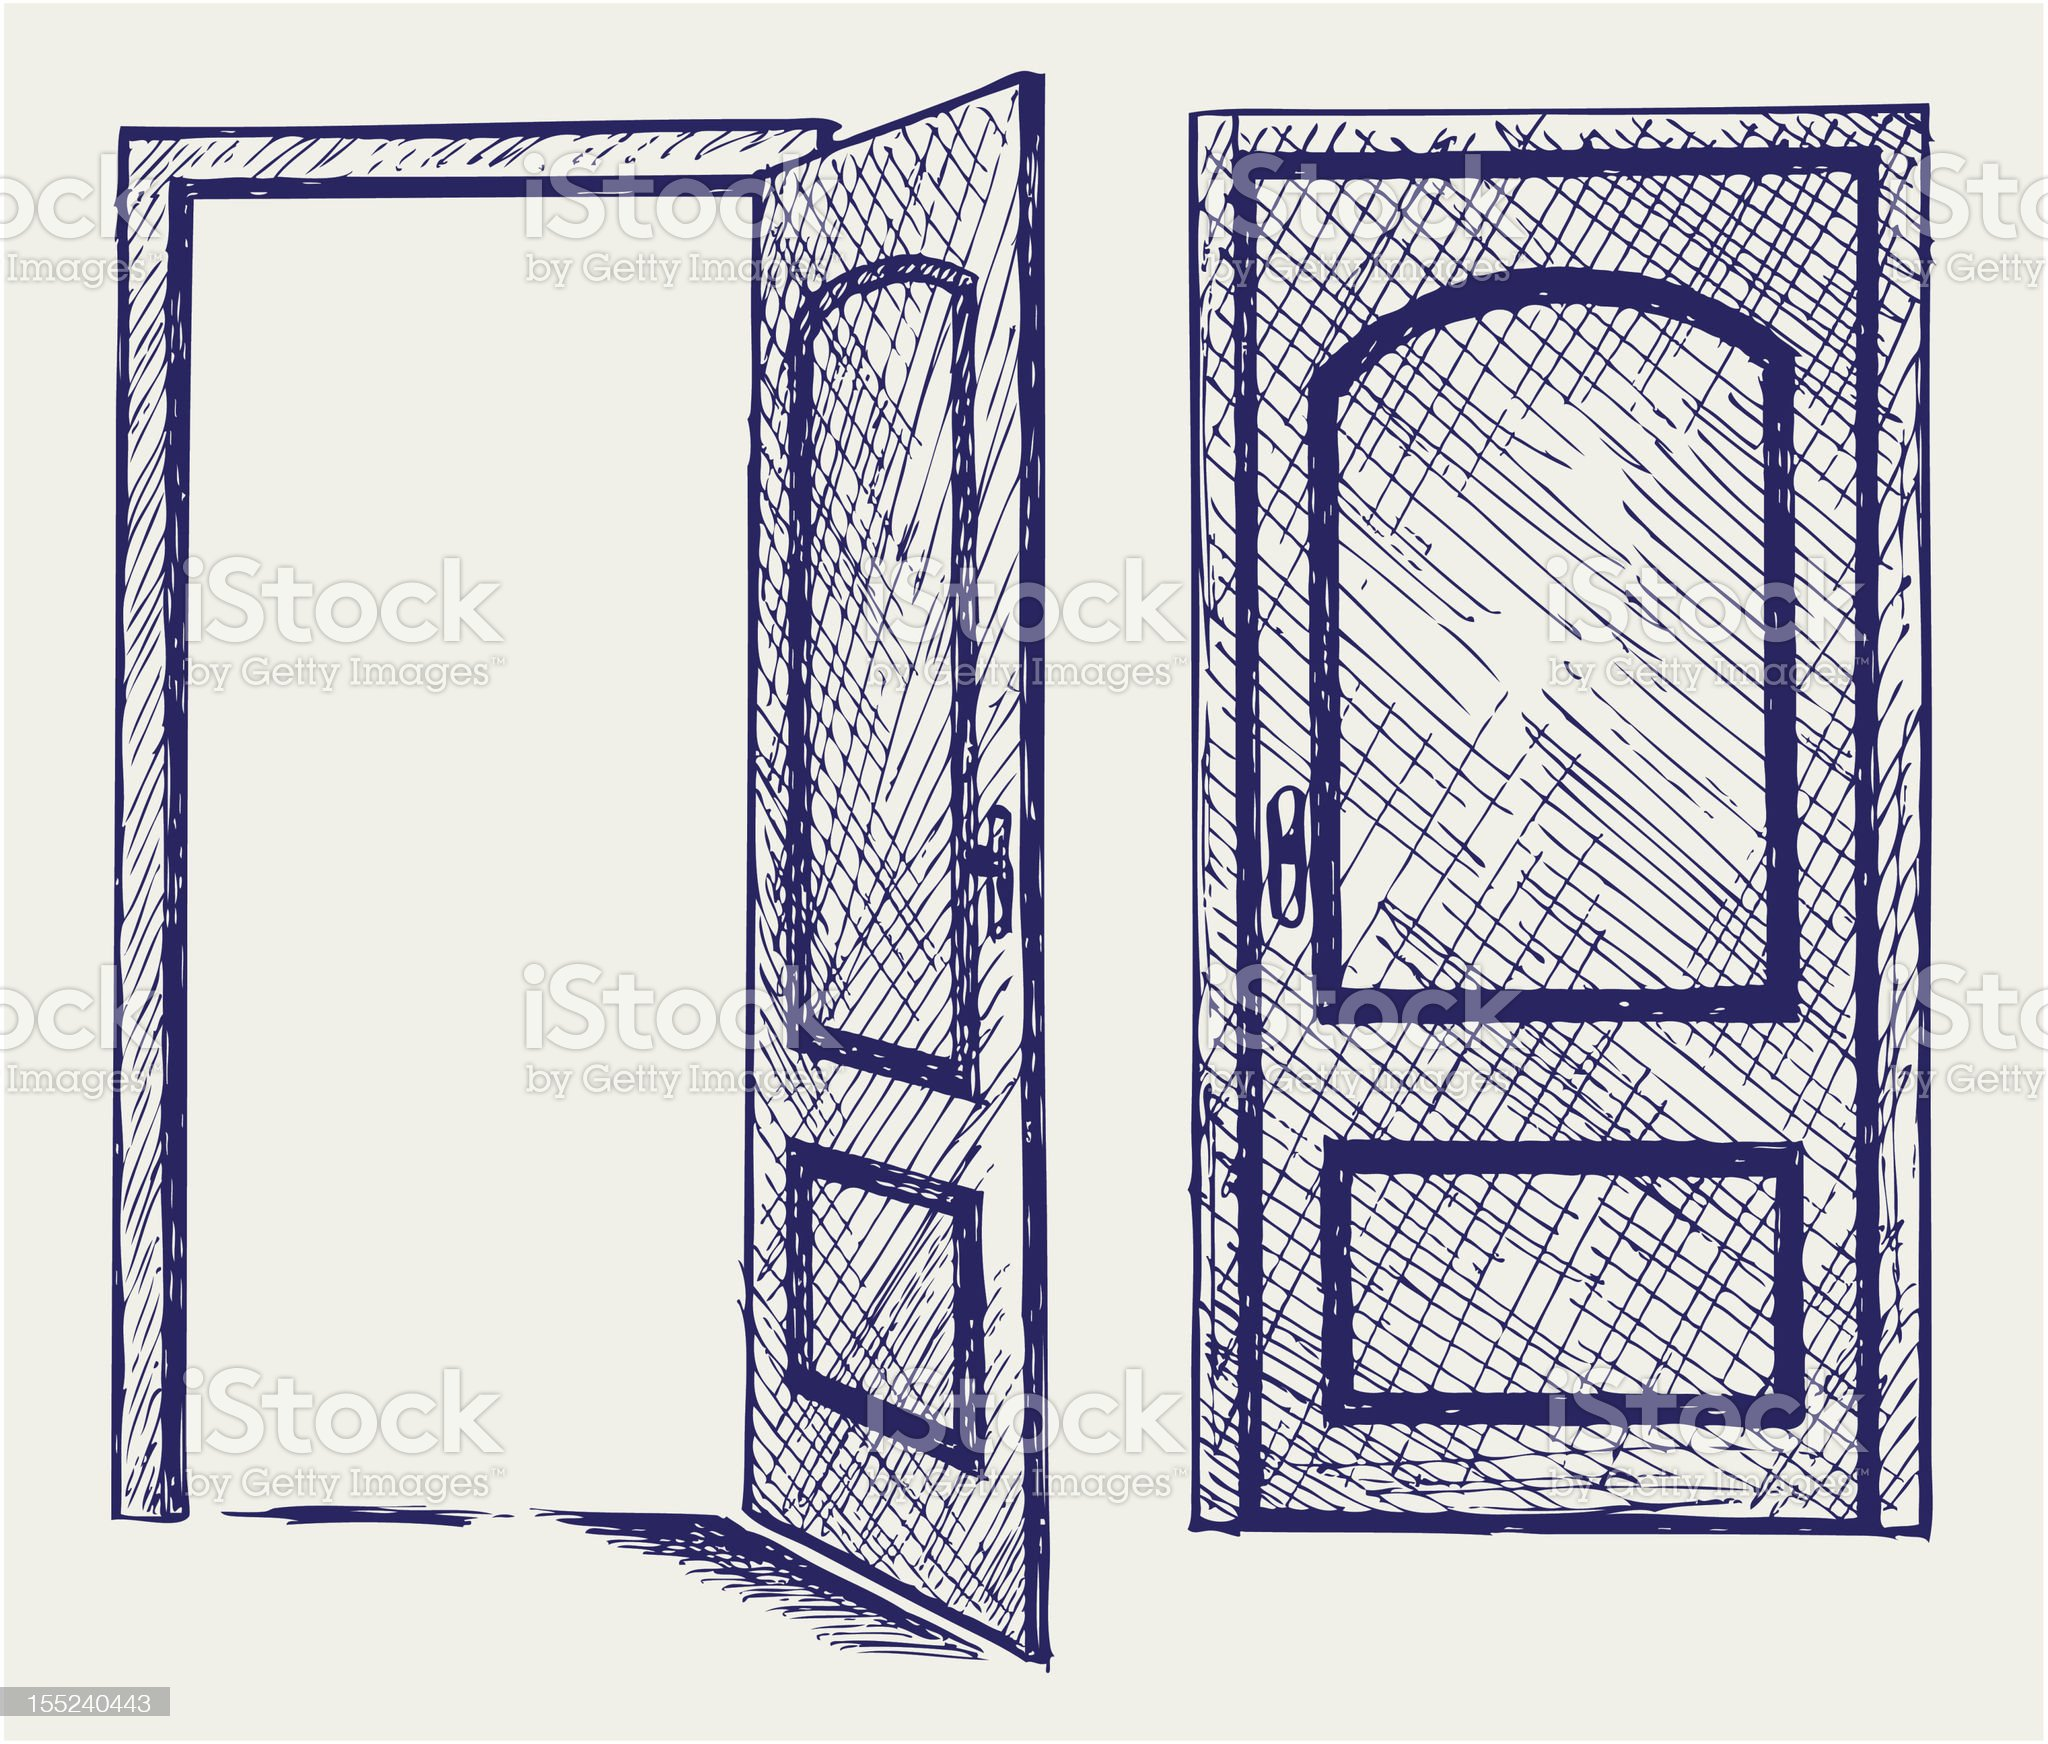 Open door royalty-free stock vector art